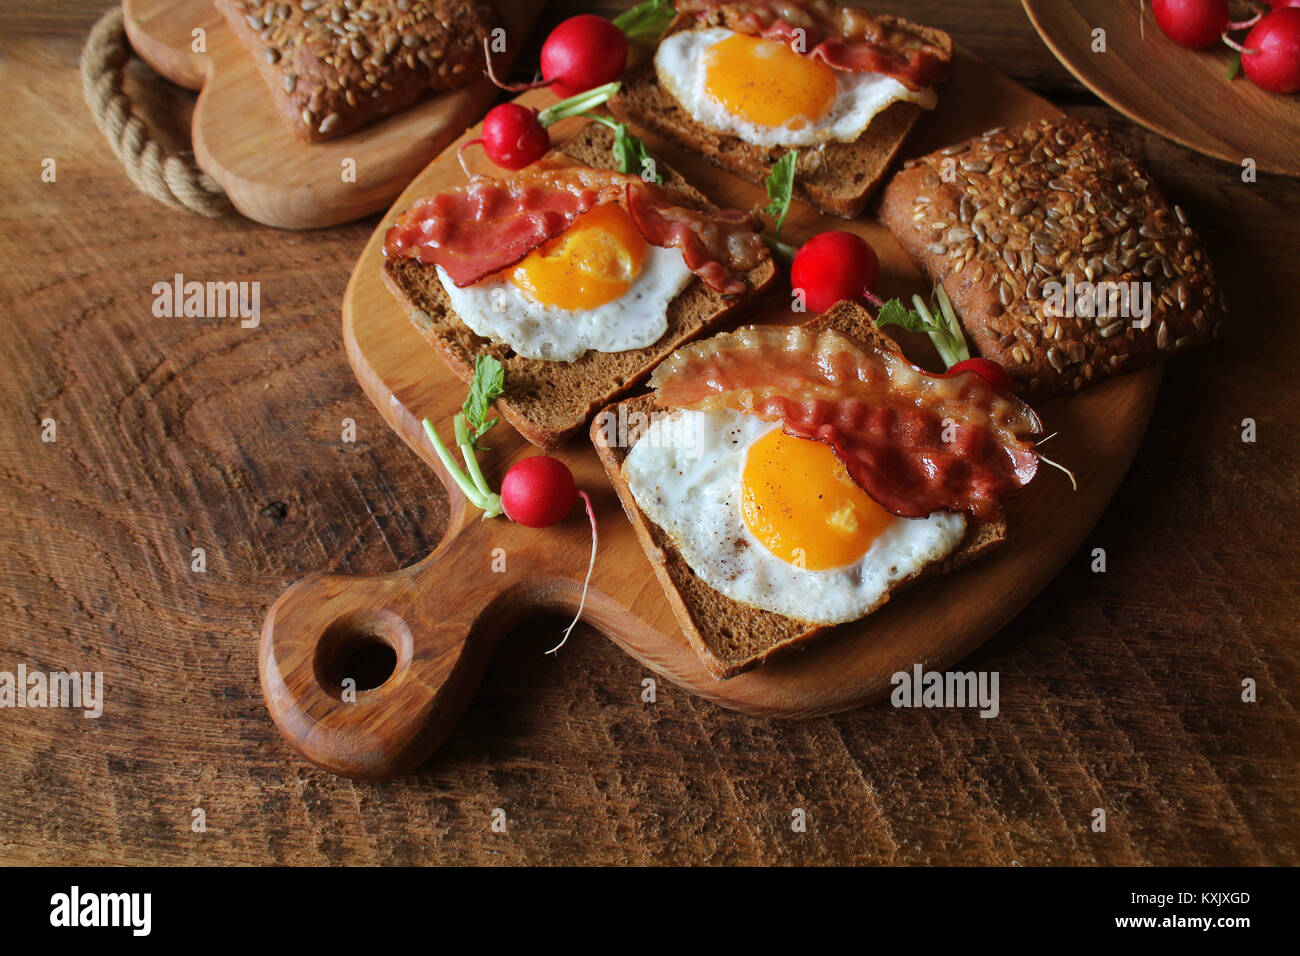 Breakfast of crispy bacon, fried eggs and bread. Sandwiches on cutting board. Rustic table - Stock Image